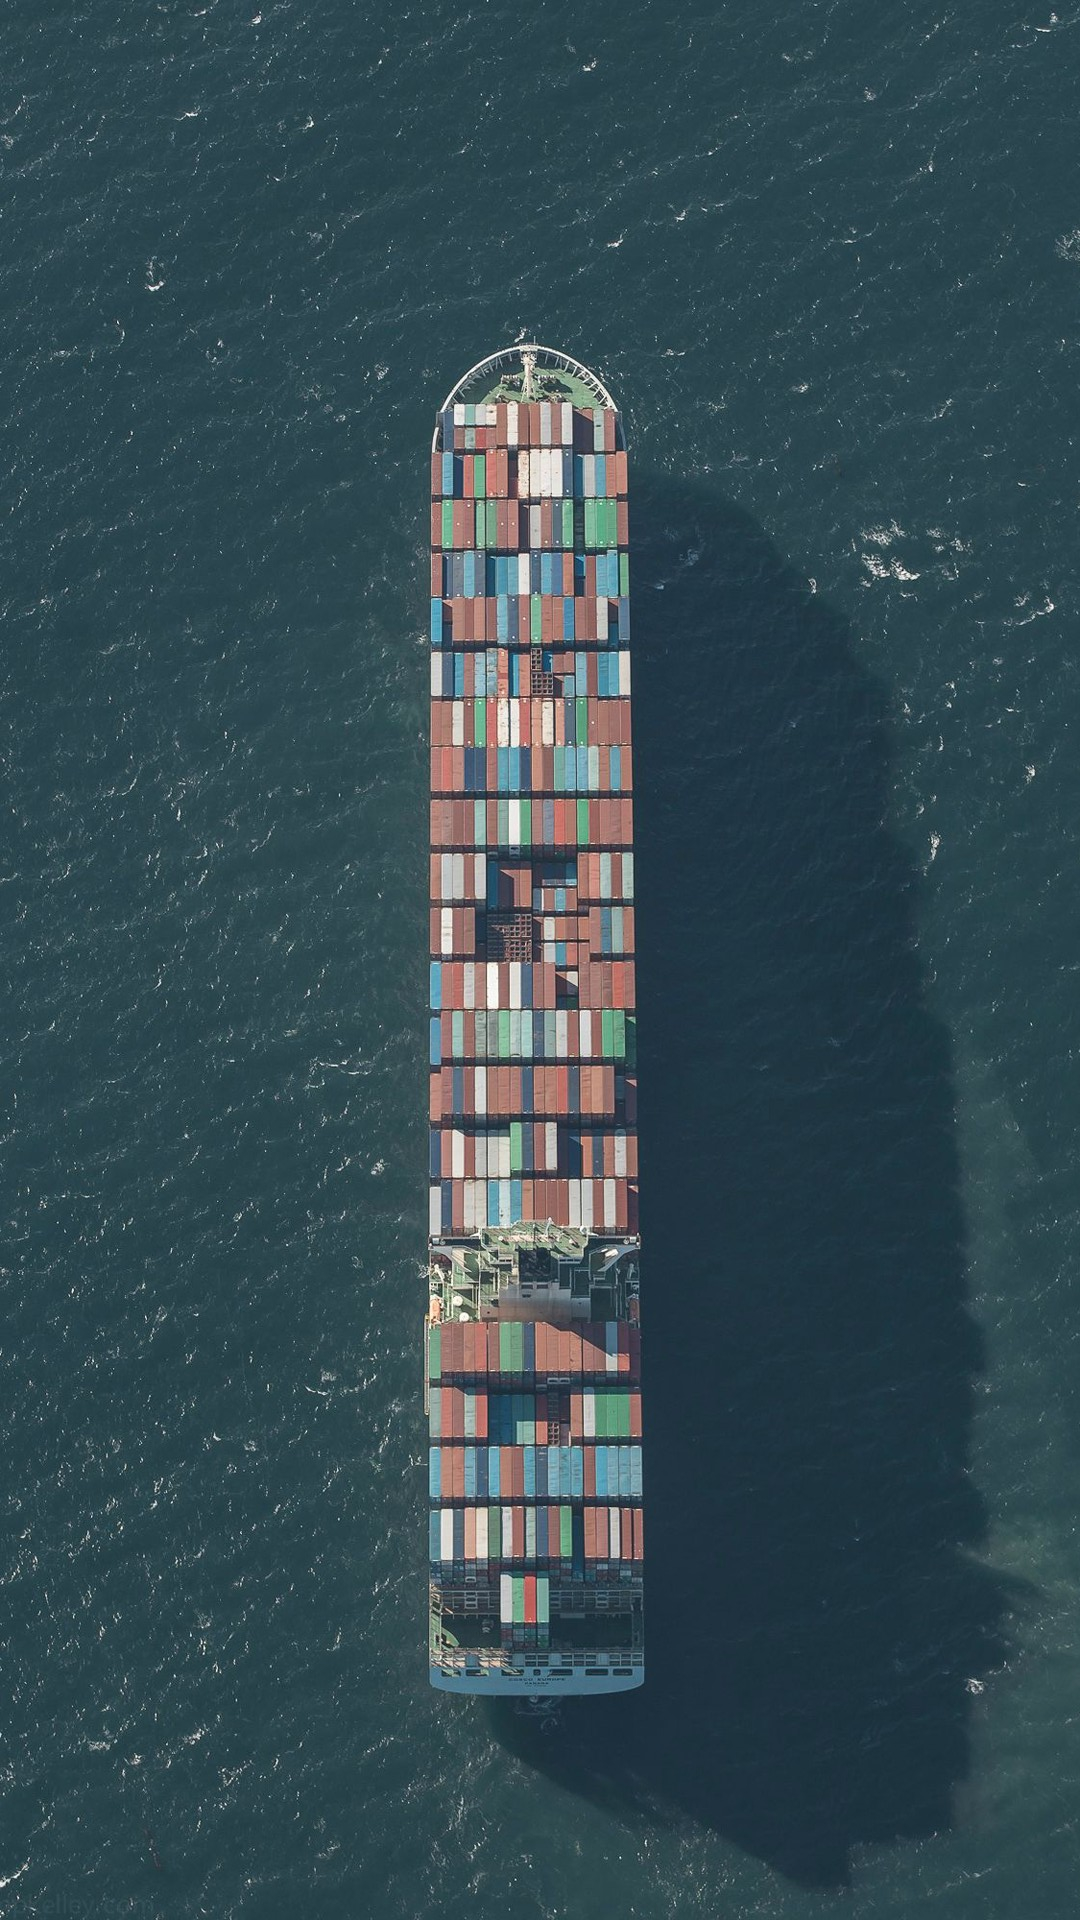 Large Container Ship Minimal Iphone Wallpaper Iphone